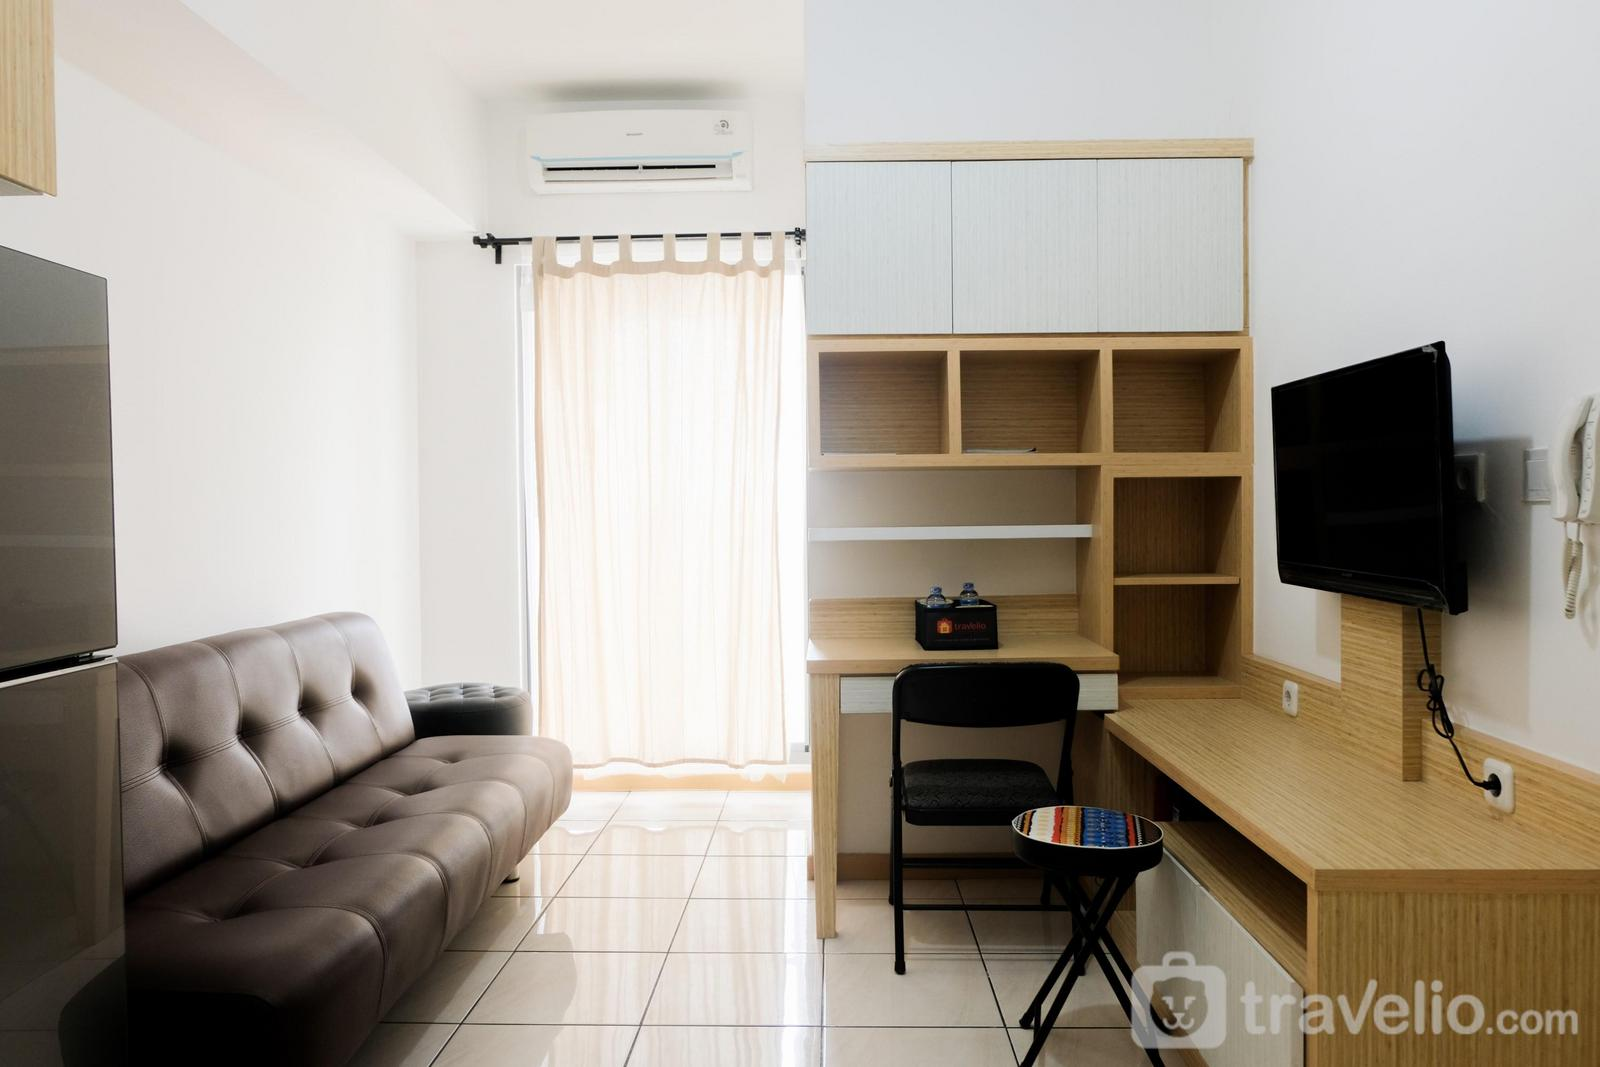 M Town Residence - Comfy 2BR at M-Town Residence Apartment by Travelio